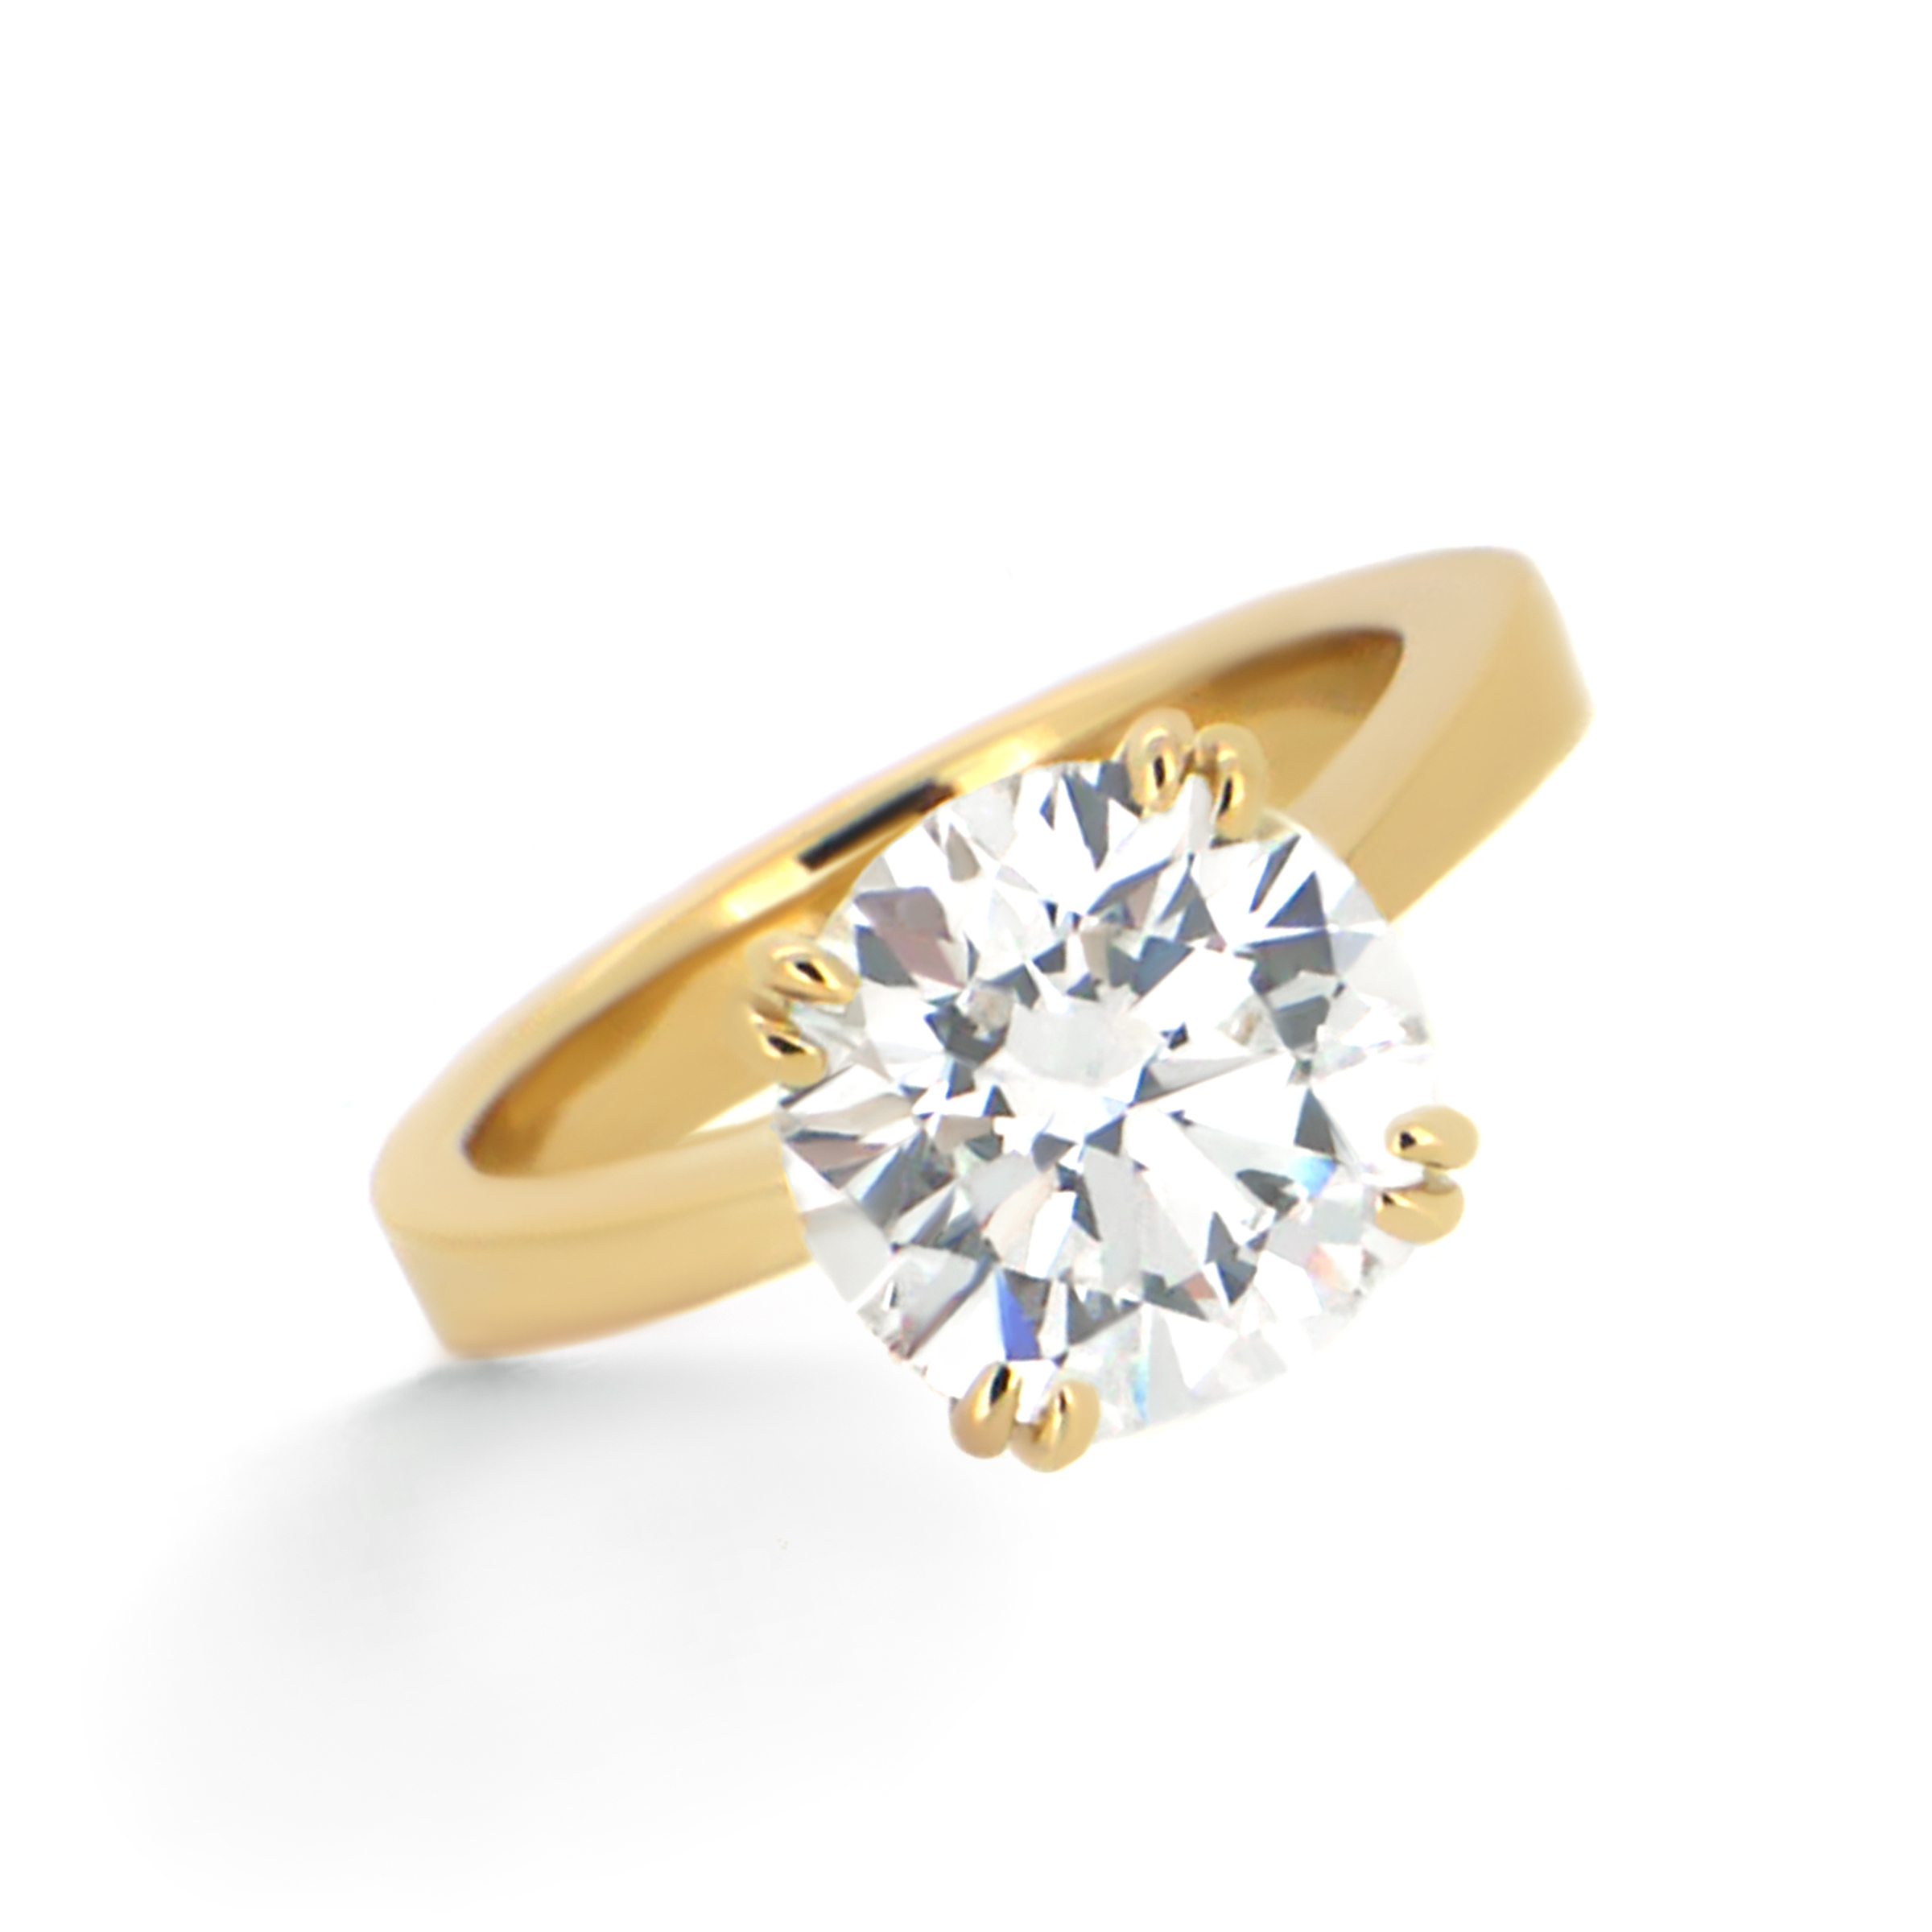 solitaire diamond engagement ring- haywards of hong kong